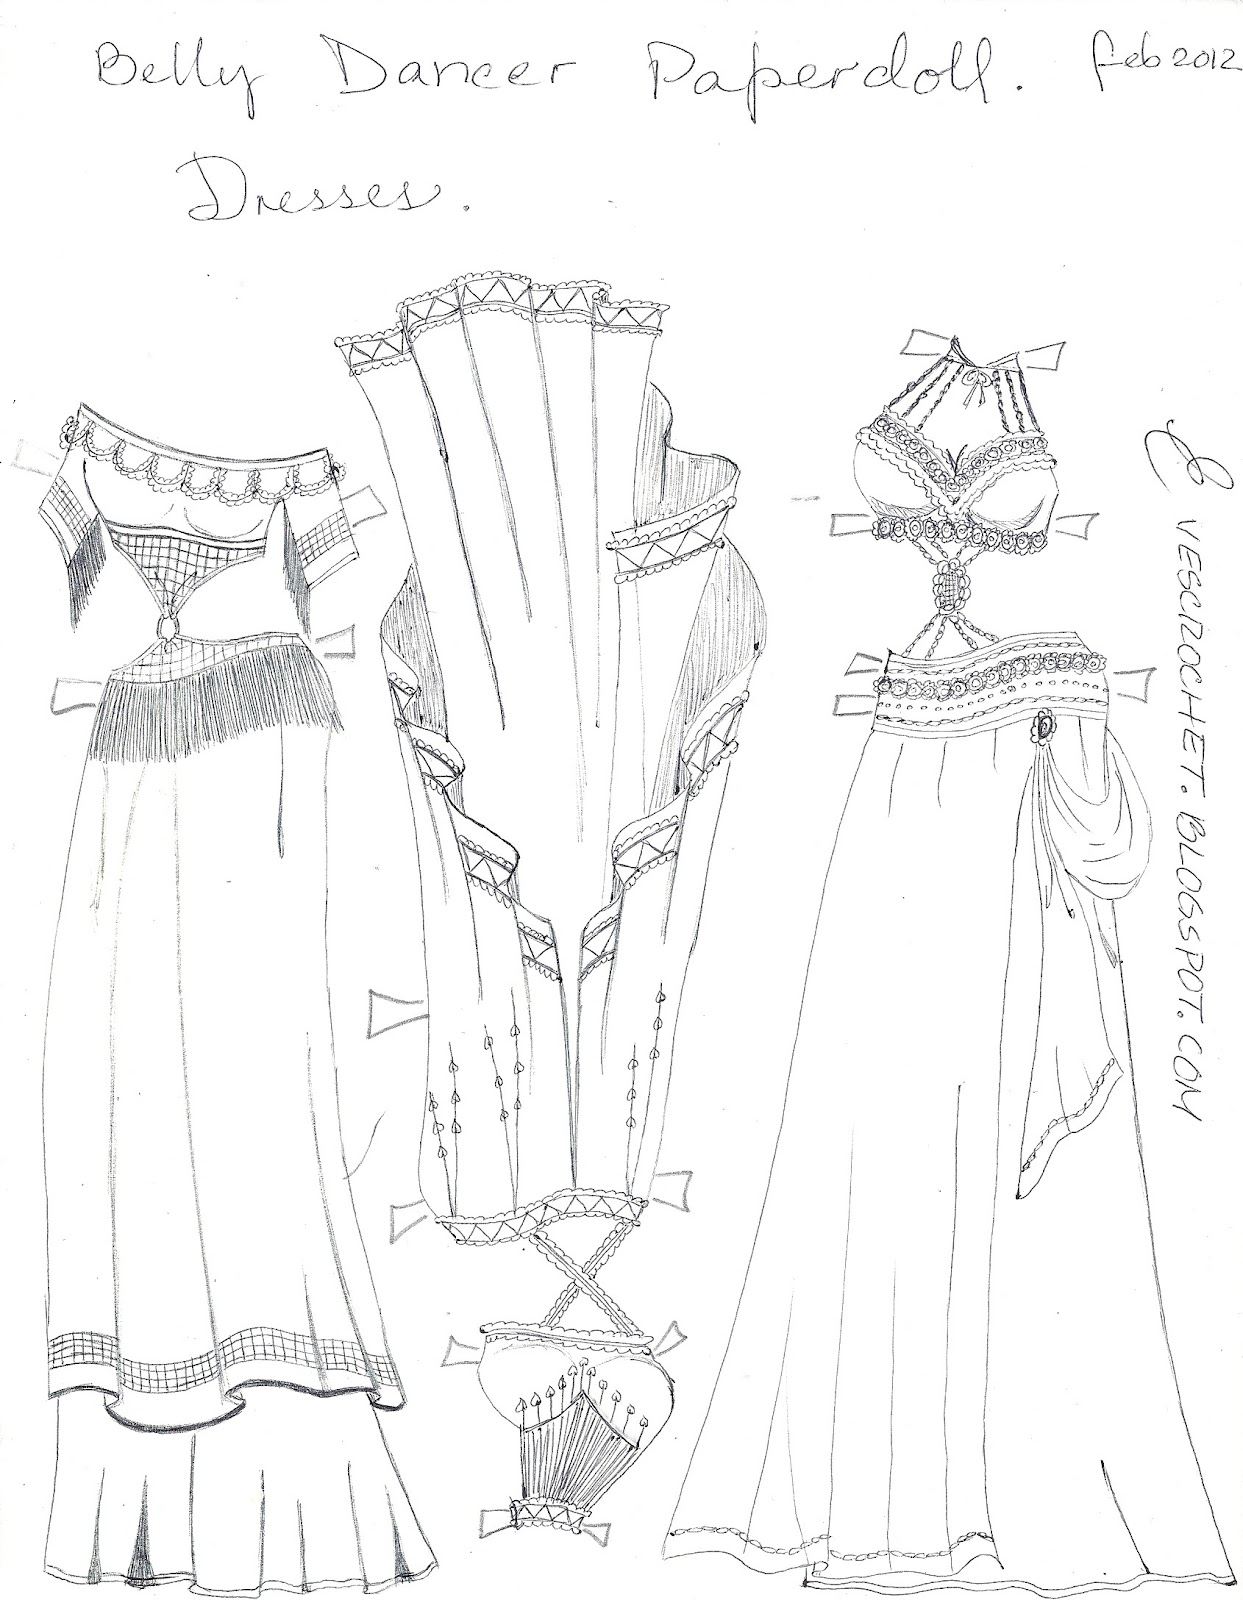 ~PAPER DOLL EVE: A GIRL DREAMS~: Belly dancer dresses to